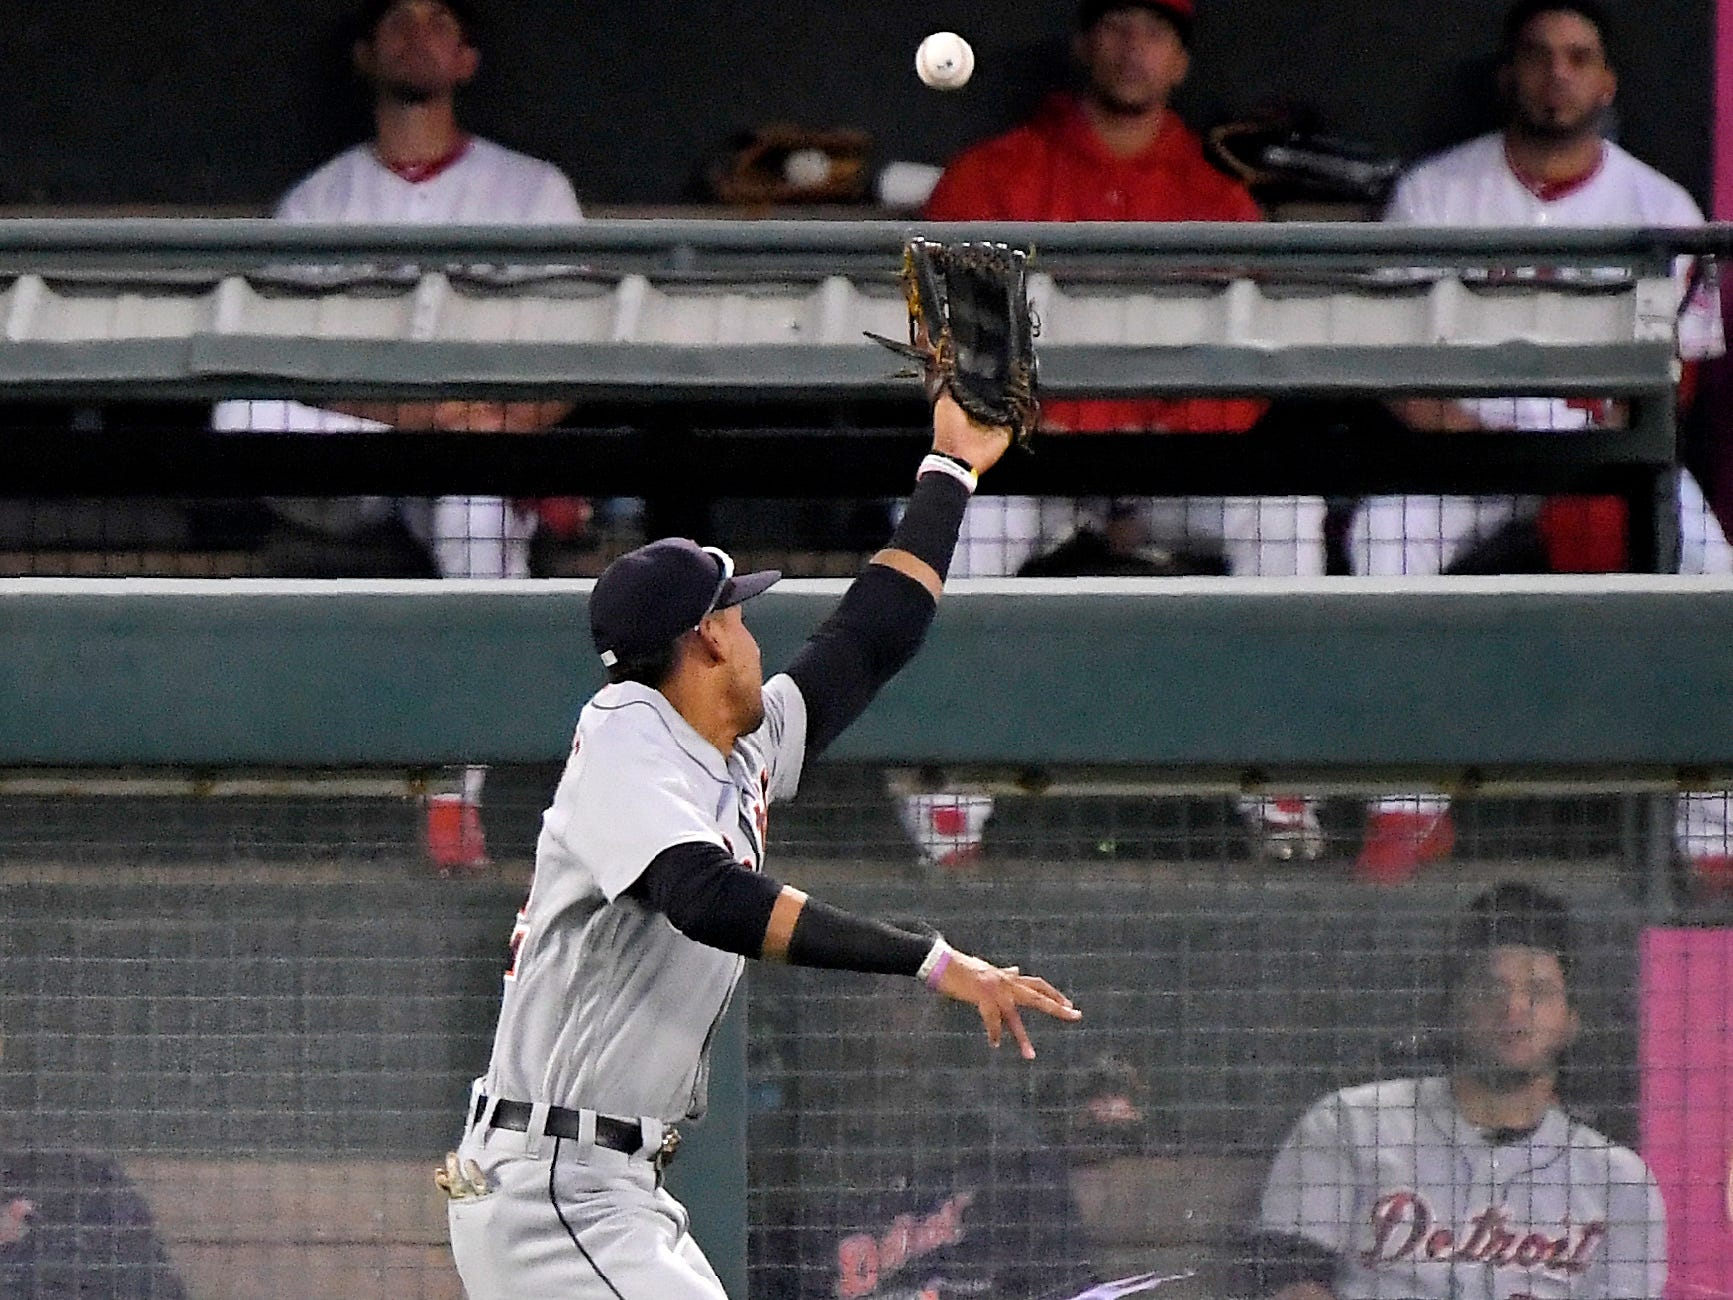 Detroit Tigers left fielder Victor Reyes can't reach a ball hit for an RBI double by Los Angeles Angels' Kaleb Cowart during the second inning.